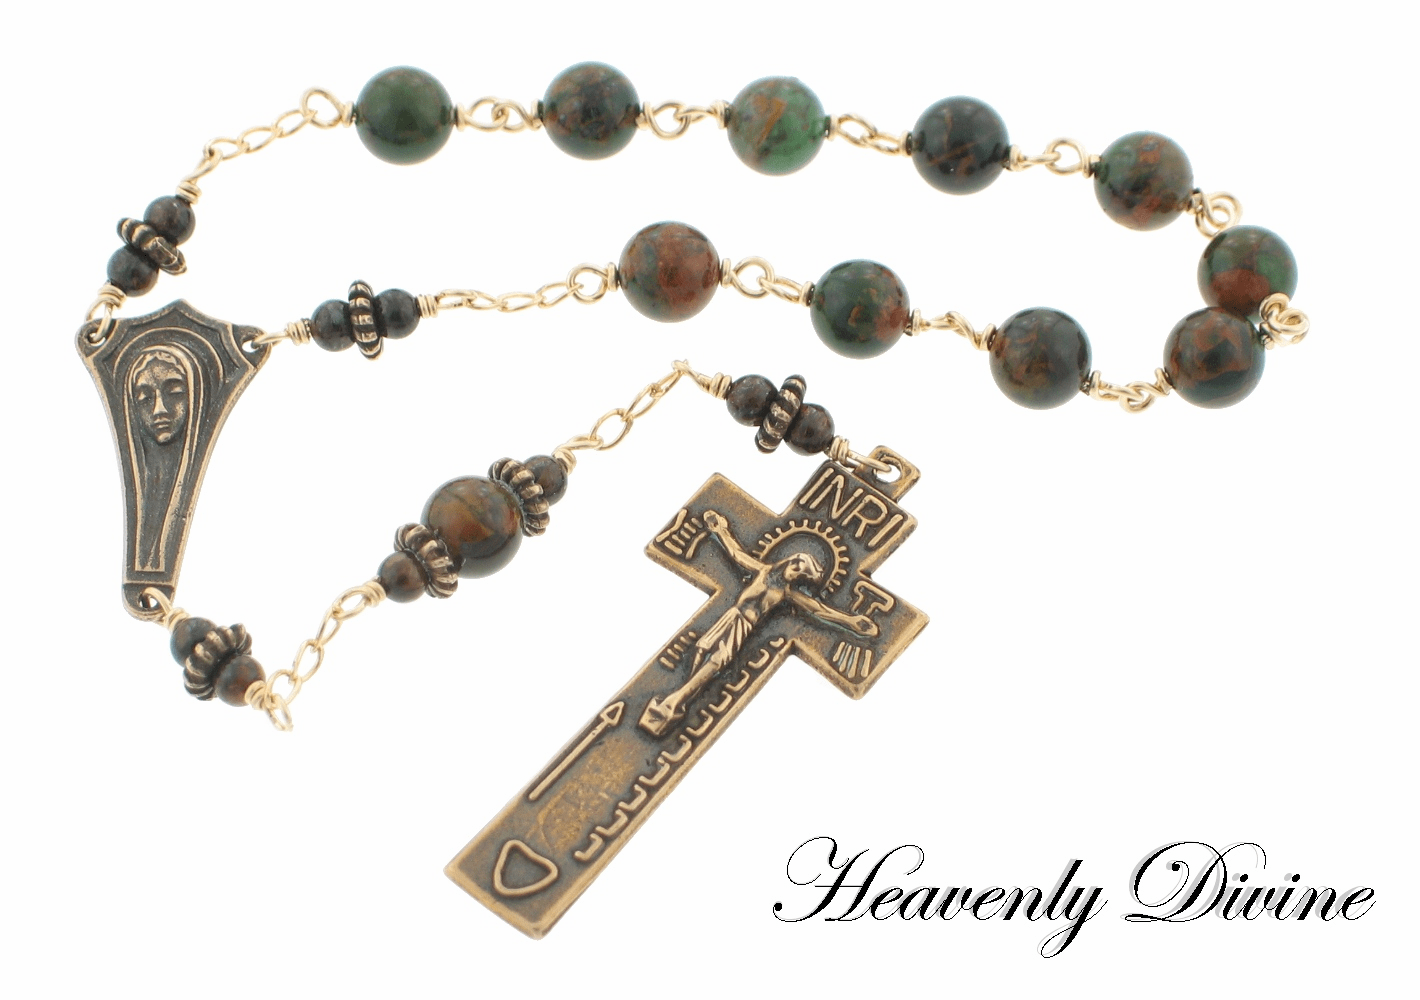 Handmade Irish Penal One-Decade Rosary by Heavenly Divine